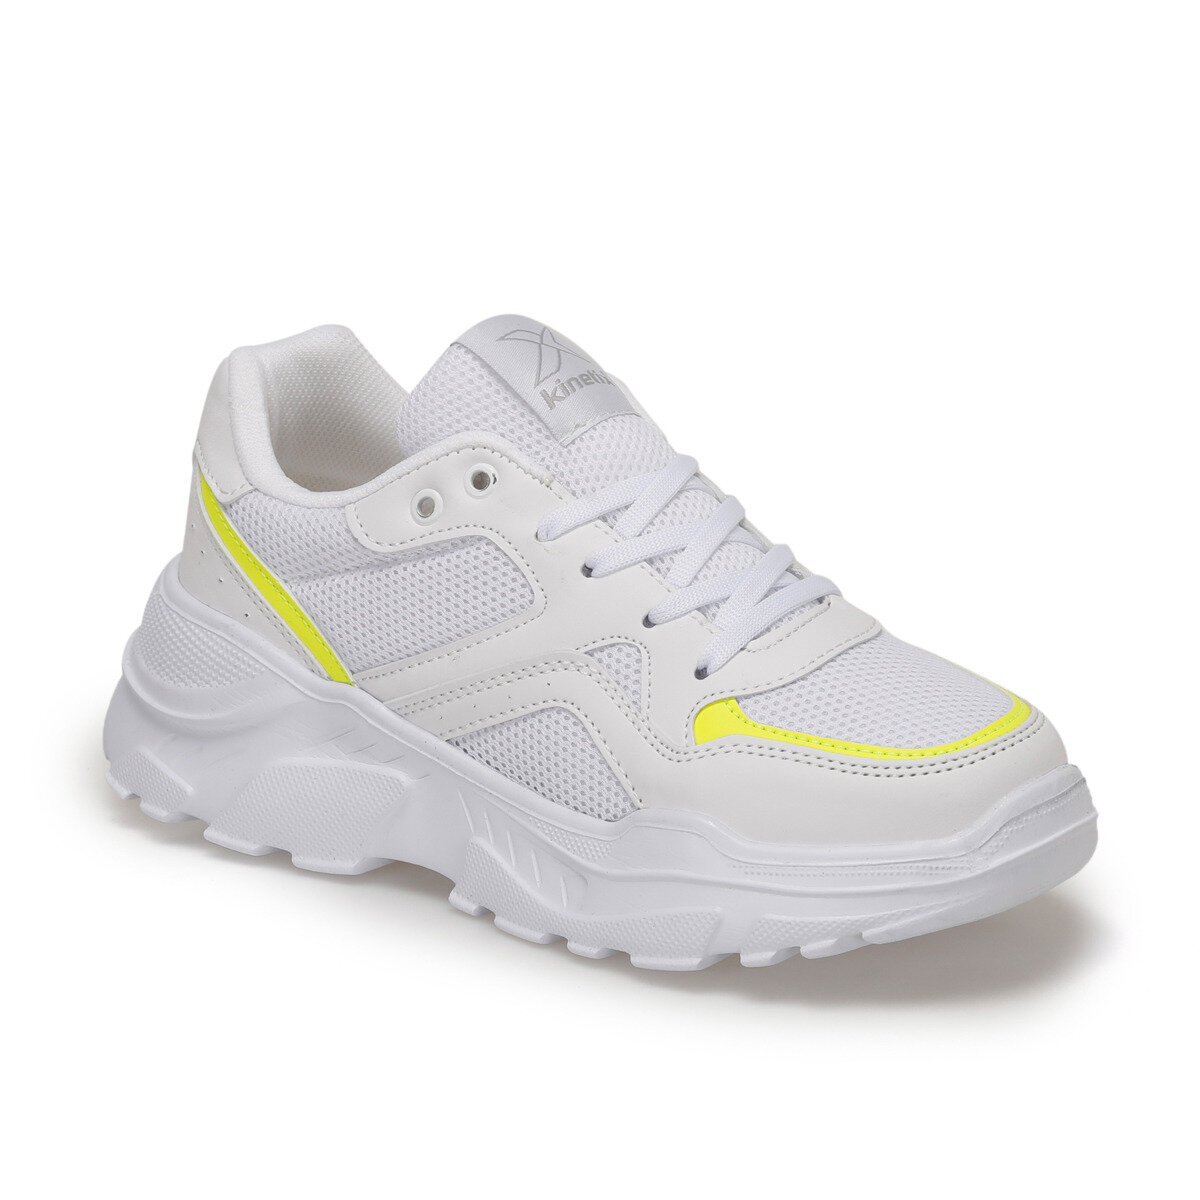 FLO PENTA W White Women 'S Sneaker Shoes KINETIX